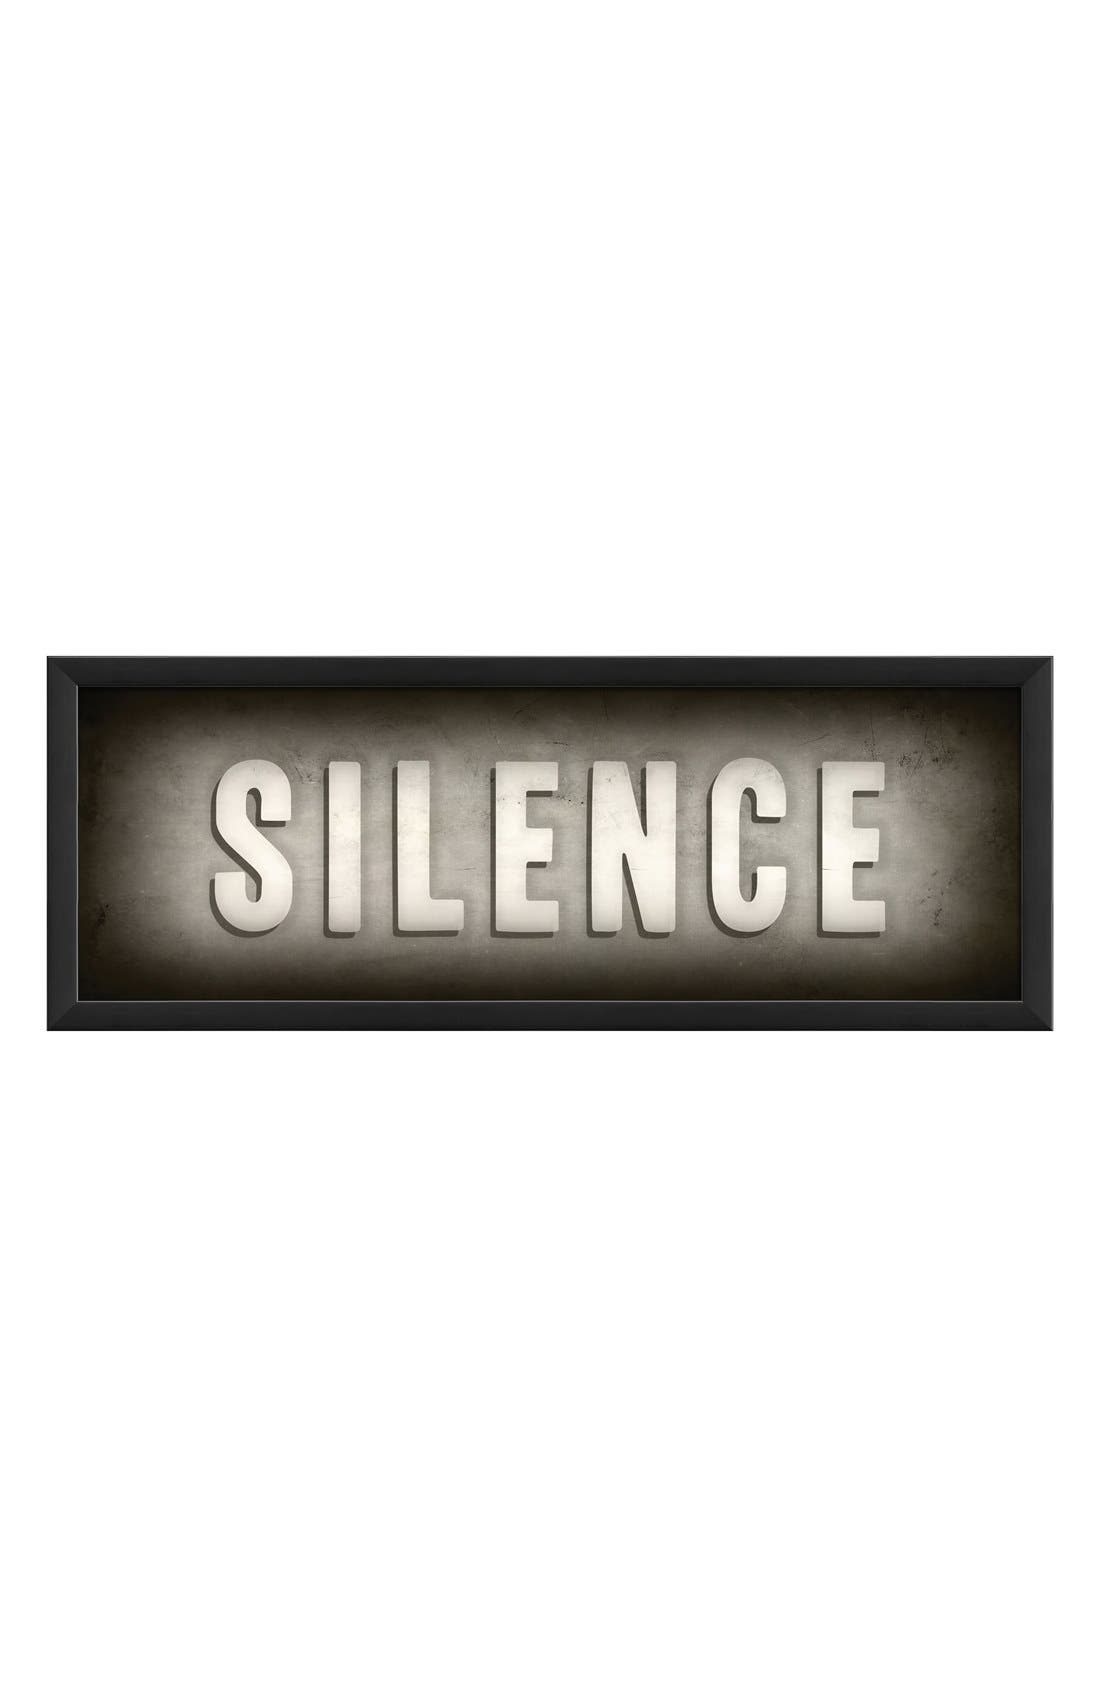 Alternate Image 1 Selected - Spicher and Company 'Silence' Vintage Look Theater Sign Artwork